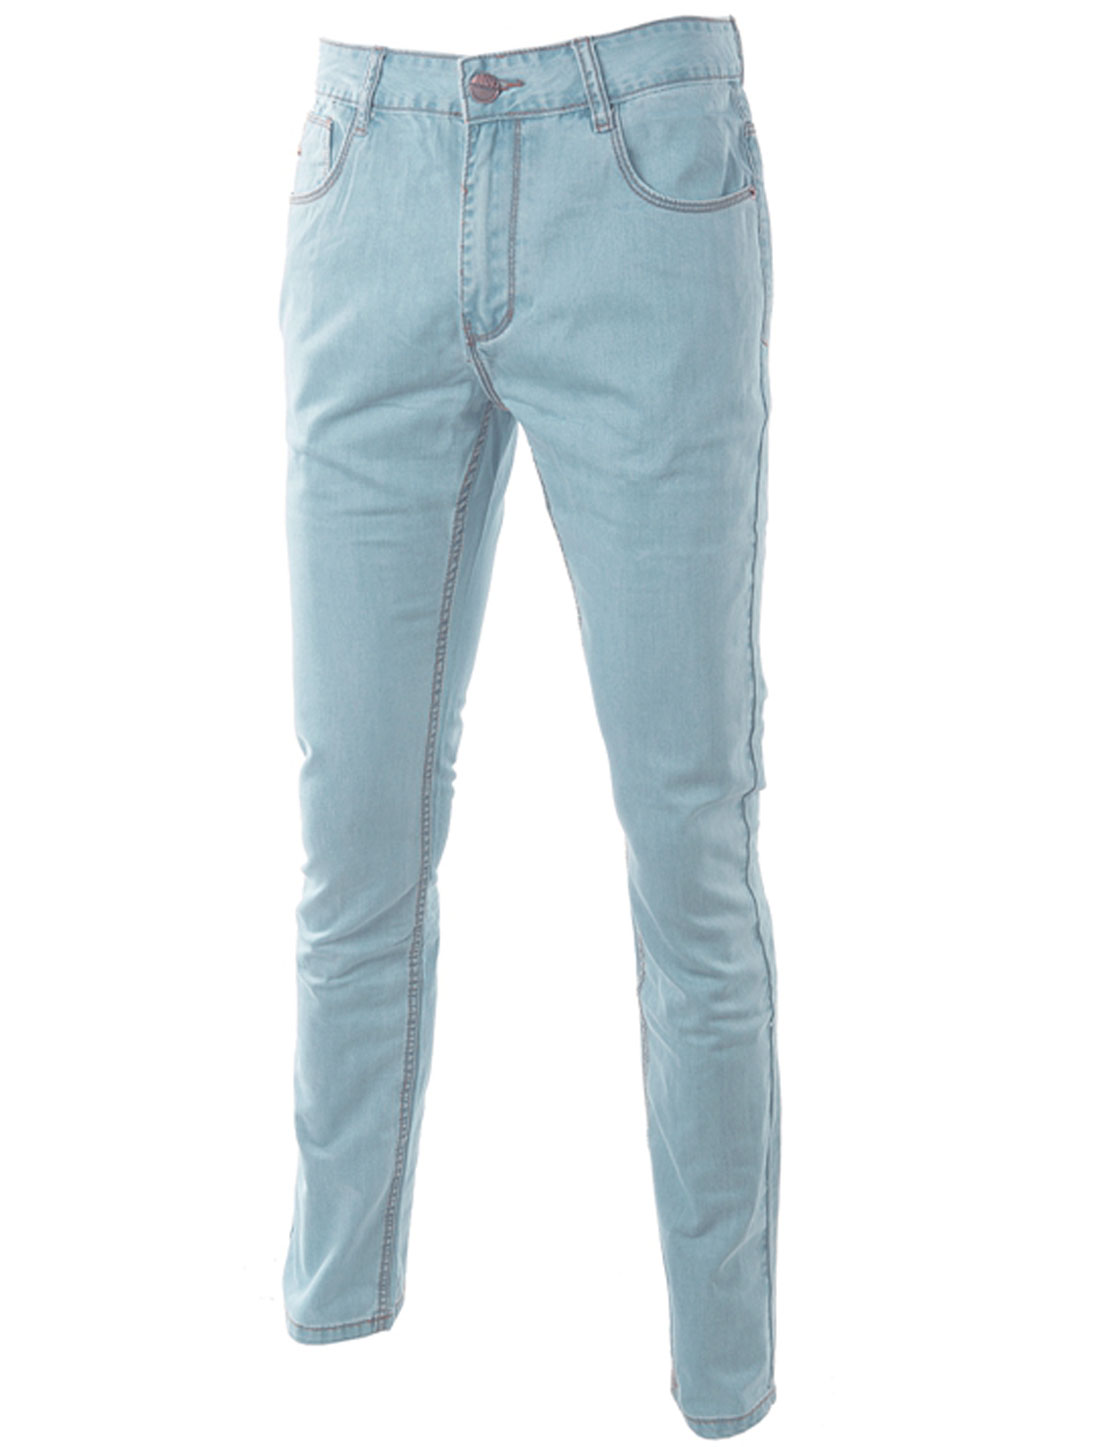 Man Front Hip Pockets Zip Fly Single Button Closure Jeans Light Blue W34